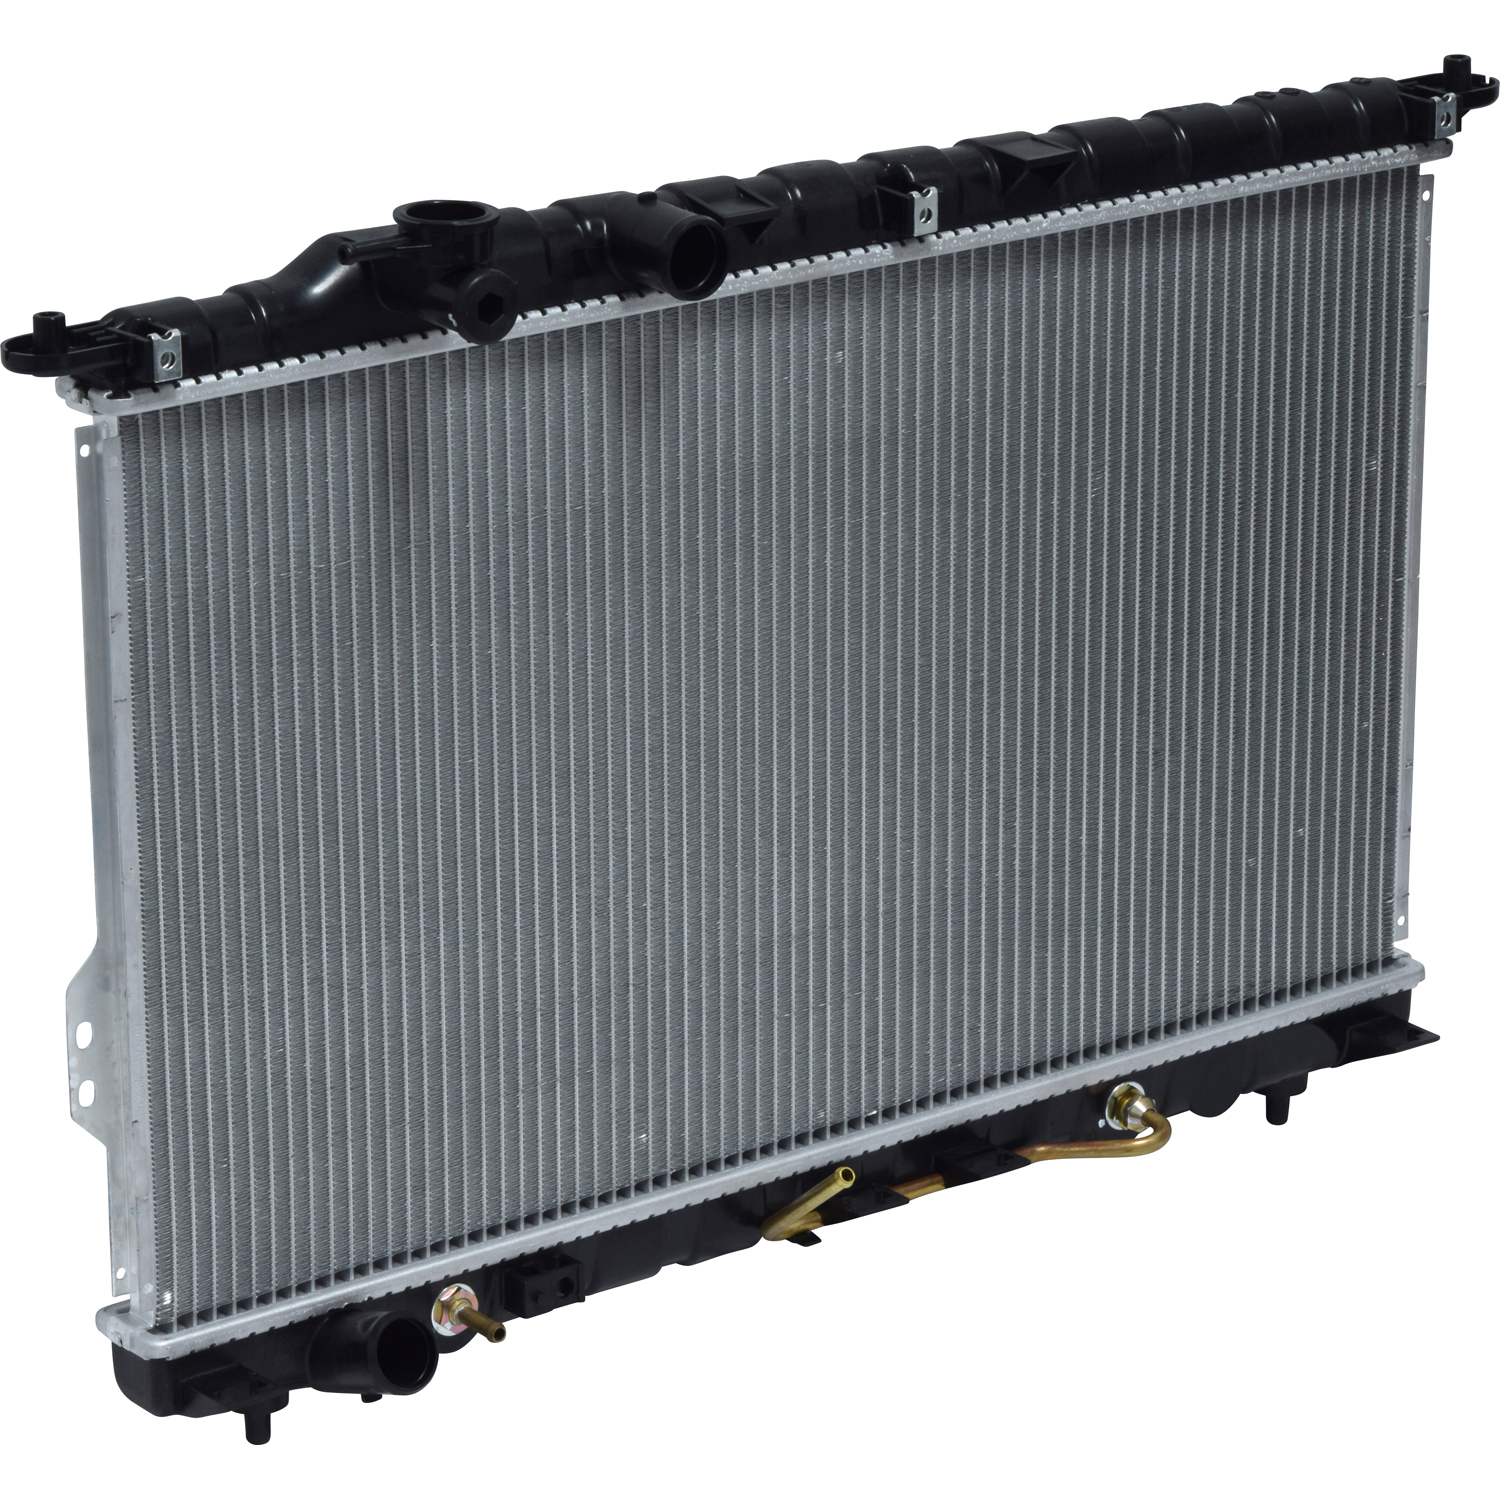 New Radiator 2892 fits 2006-2016 Toyota RAV4 2.4 2.5 L4 3.5 V6